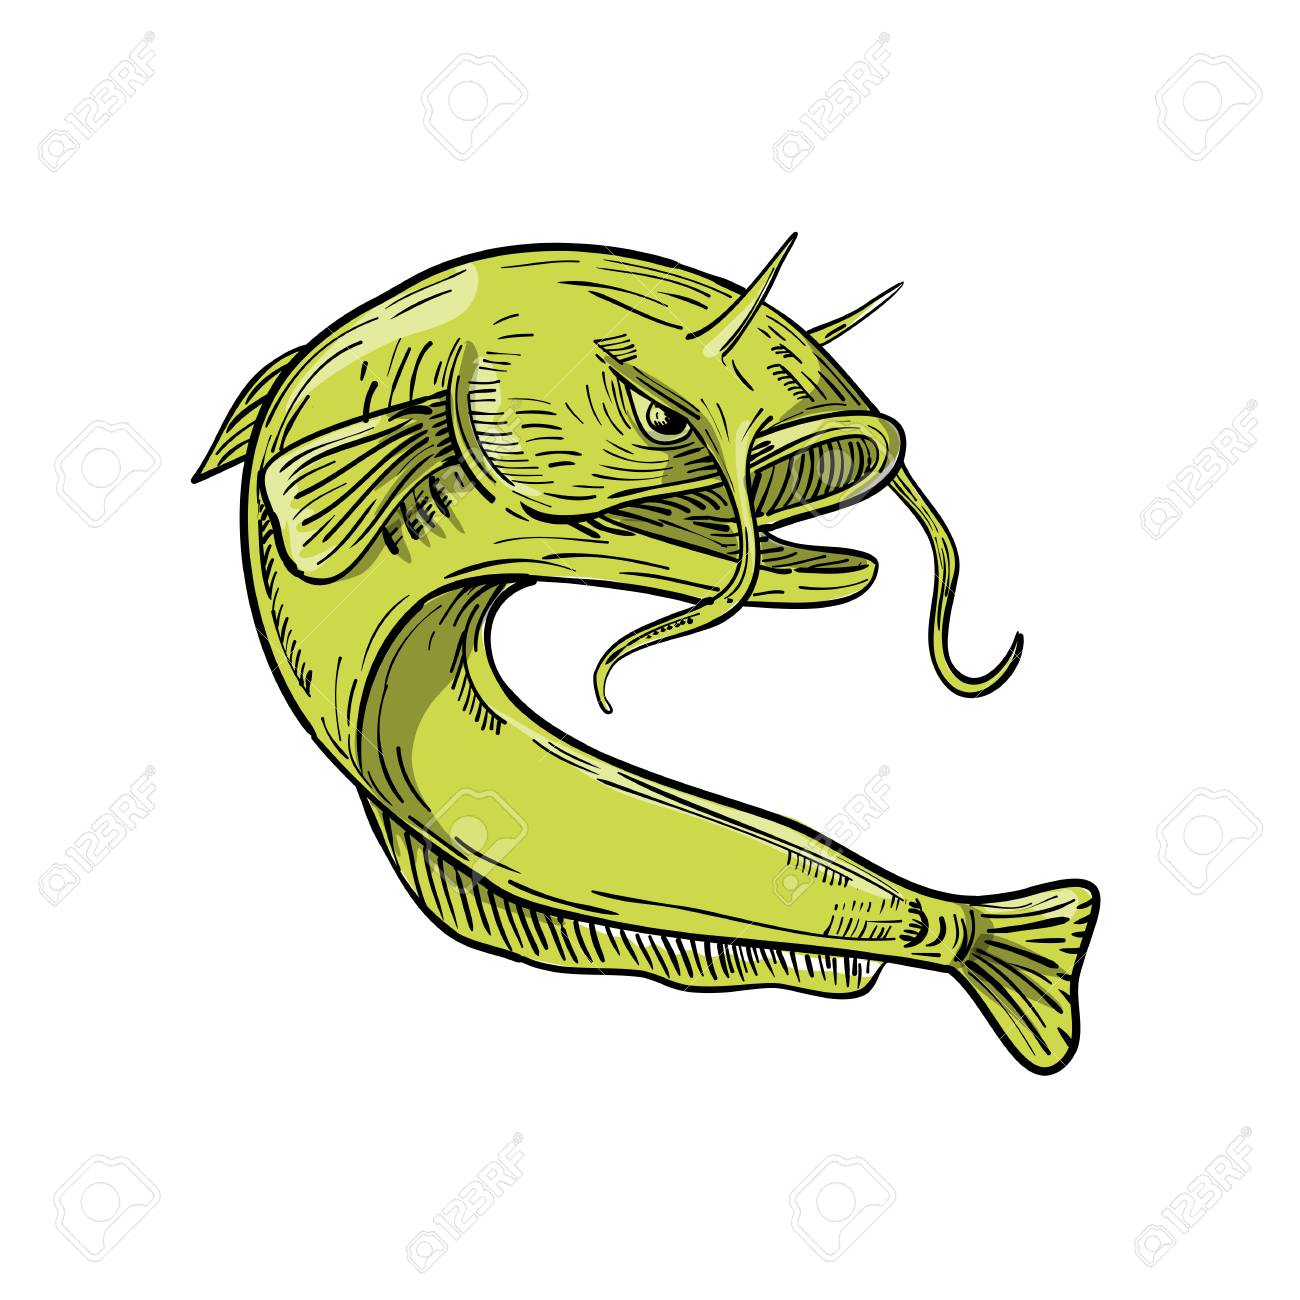 Cat Fish Drawing at GetDrawings.com | Free for personal use Cat Fish ...